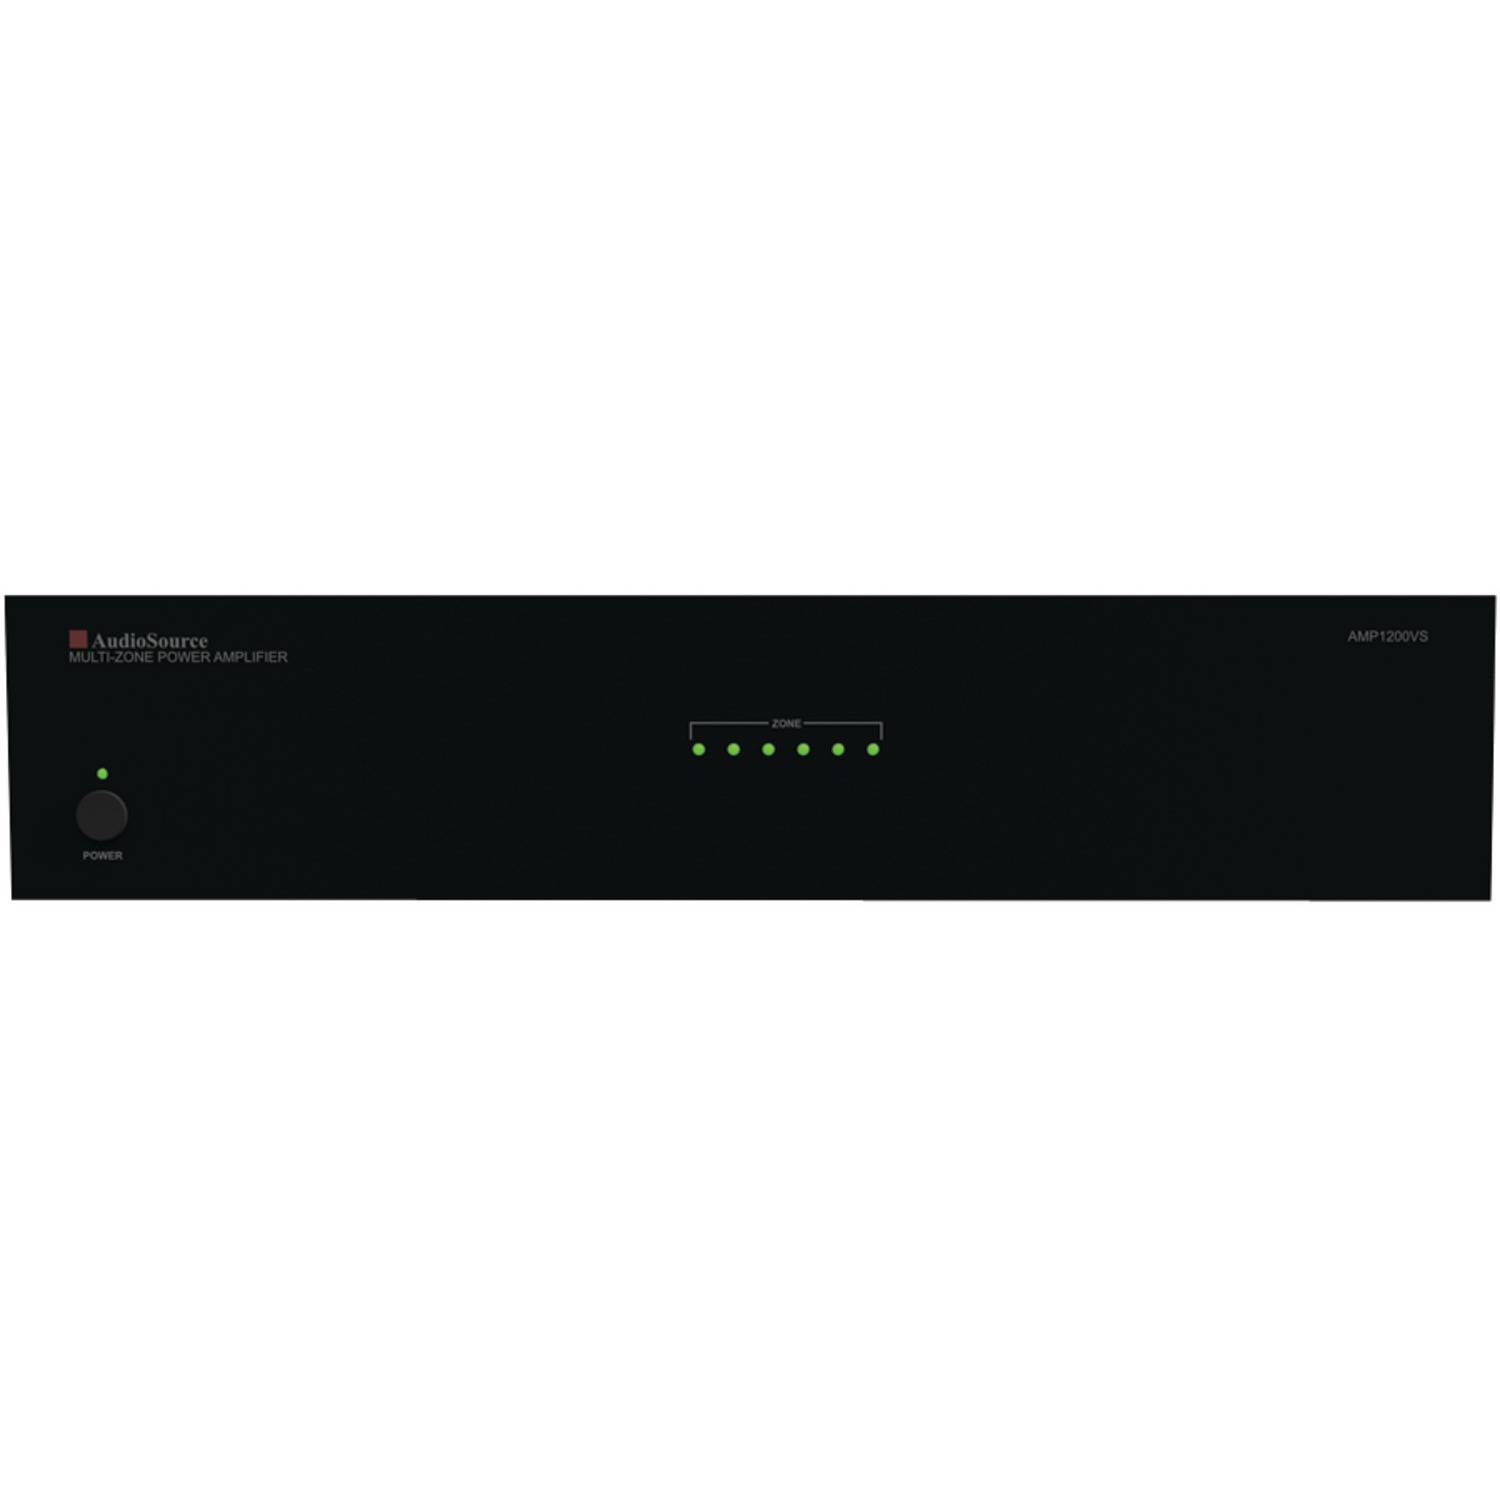 AudioSource AMP1200VS 12-Channel, 6-Zone Distributed Audio Power Amplifier by AudioSource